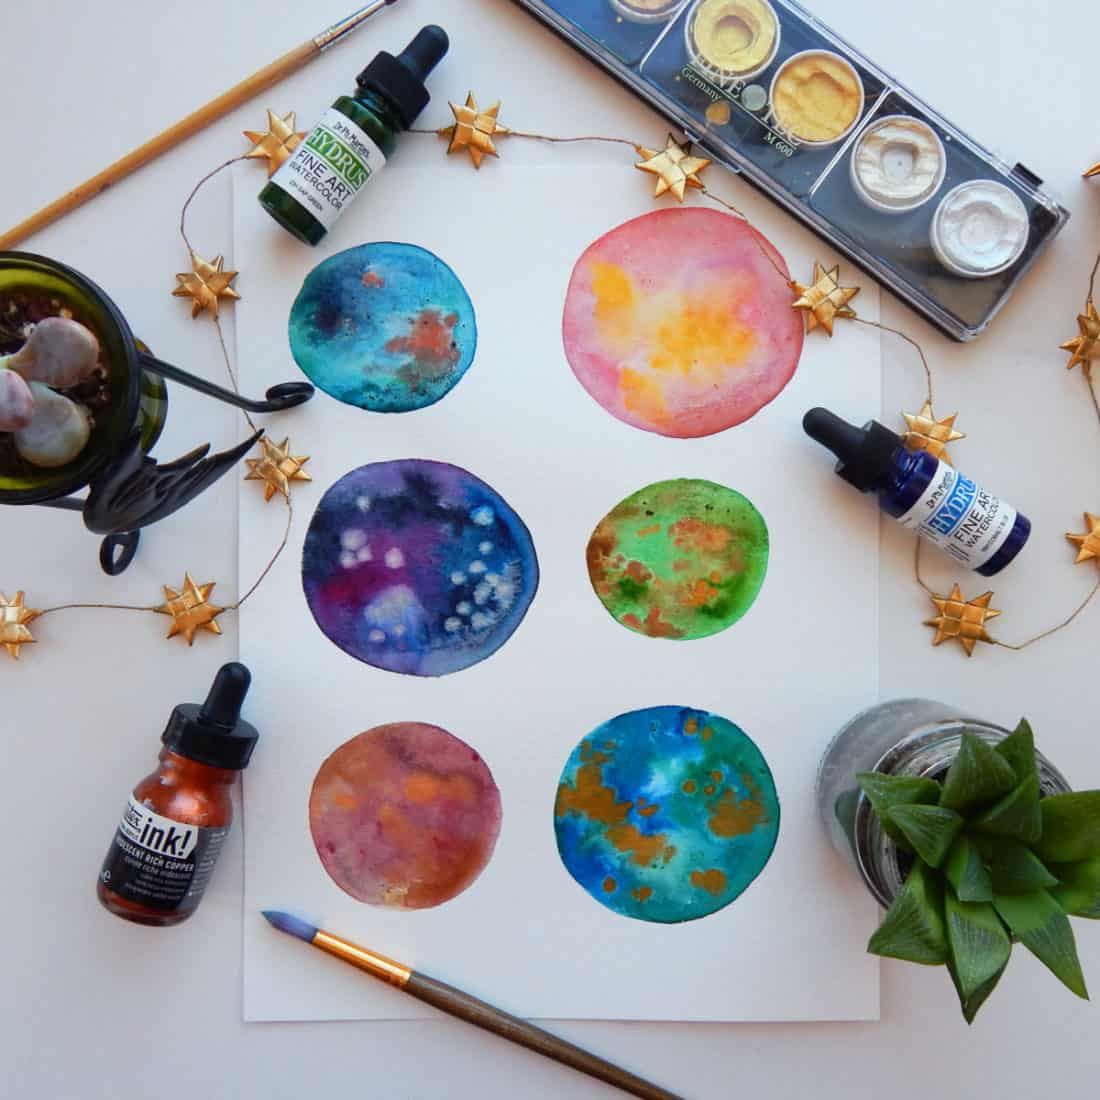 Painting of several planets, created using watercolor paints.